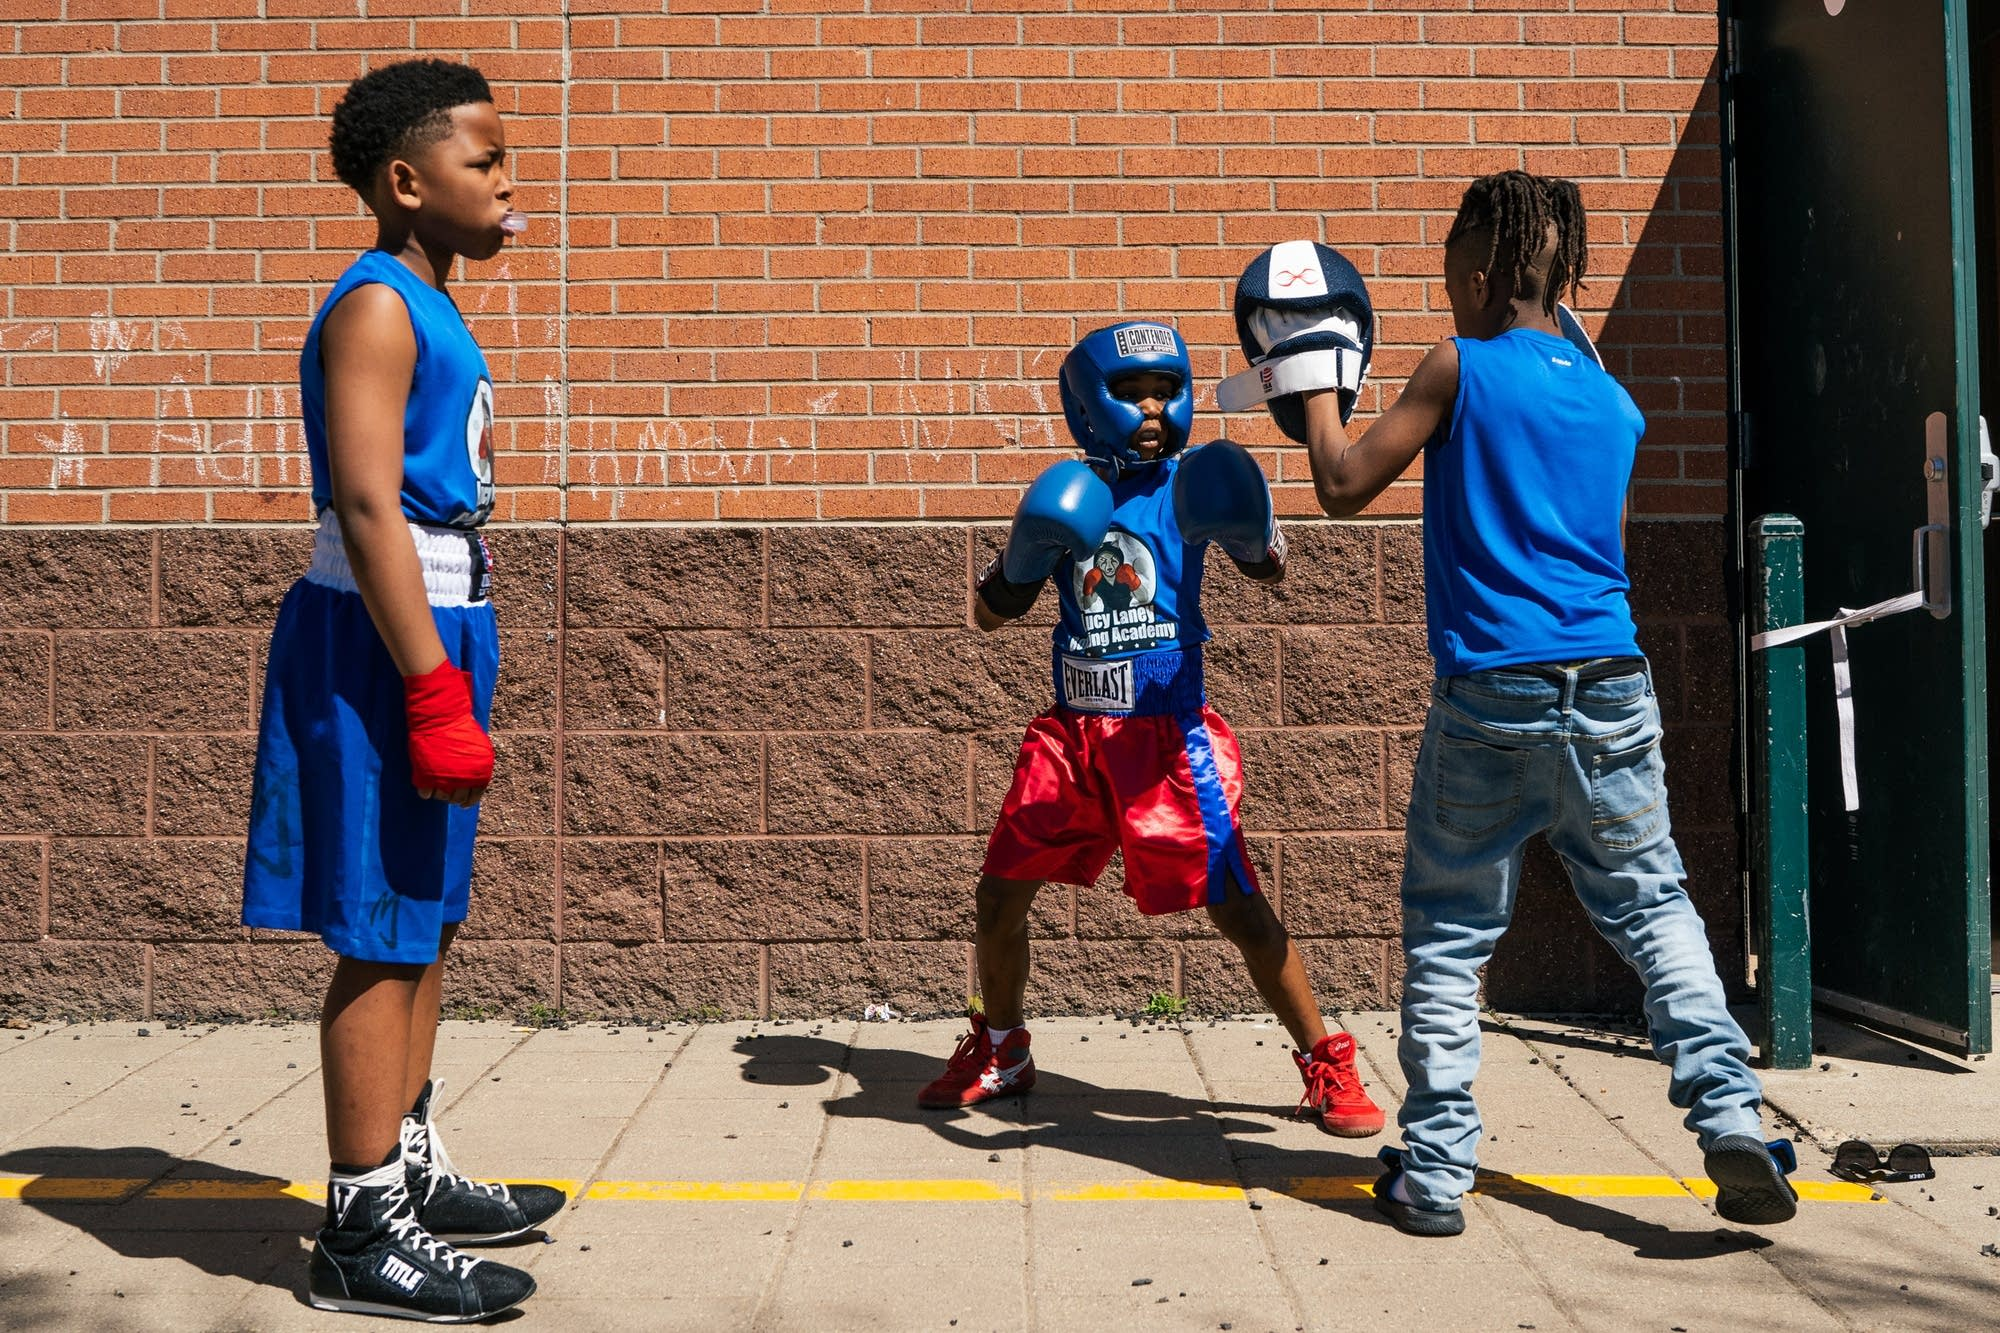 Lucy Laney Boxing Academy fighters warm up outside.